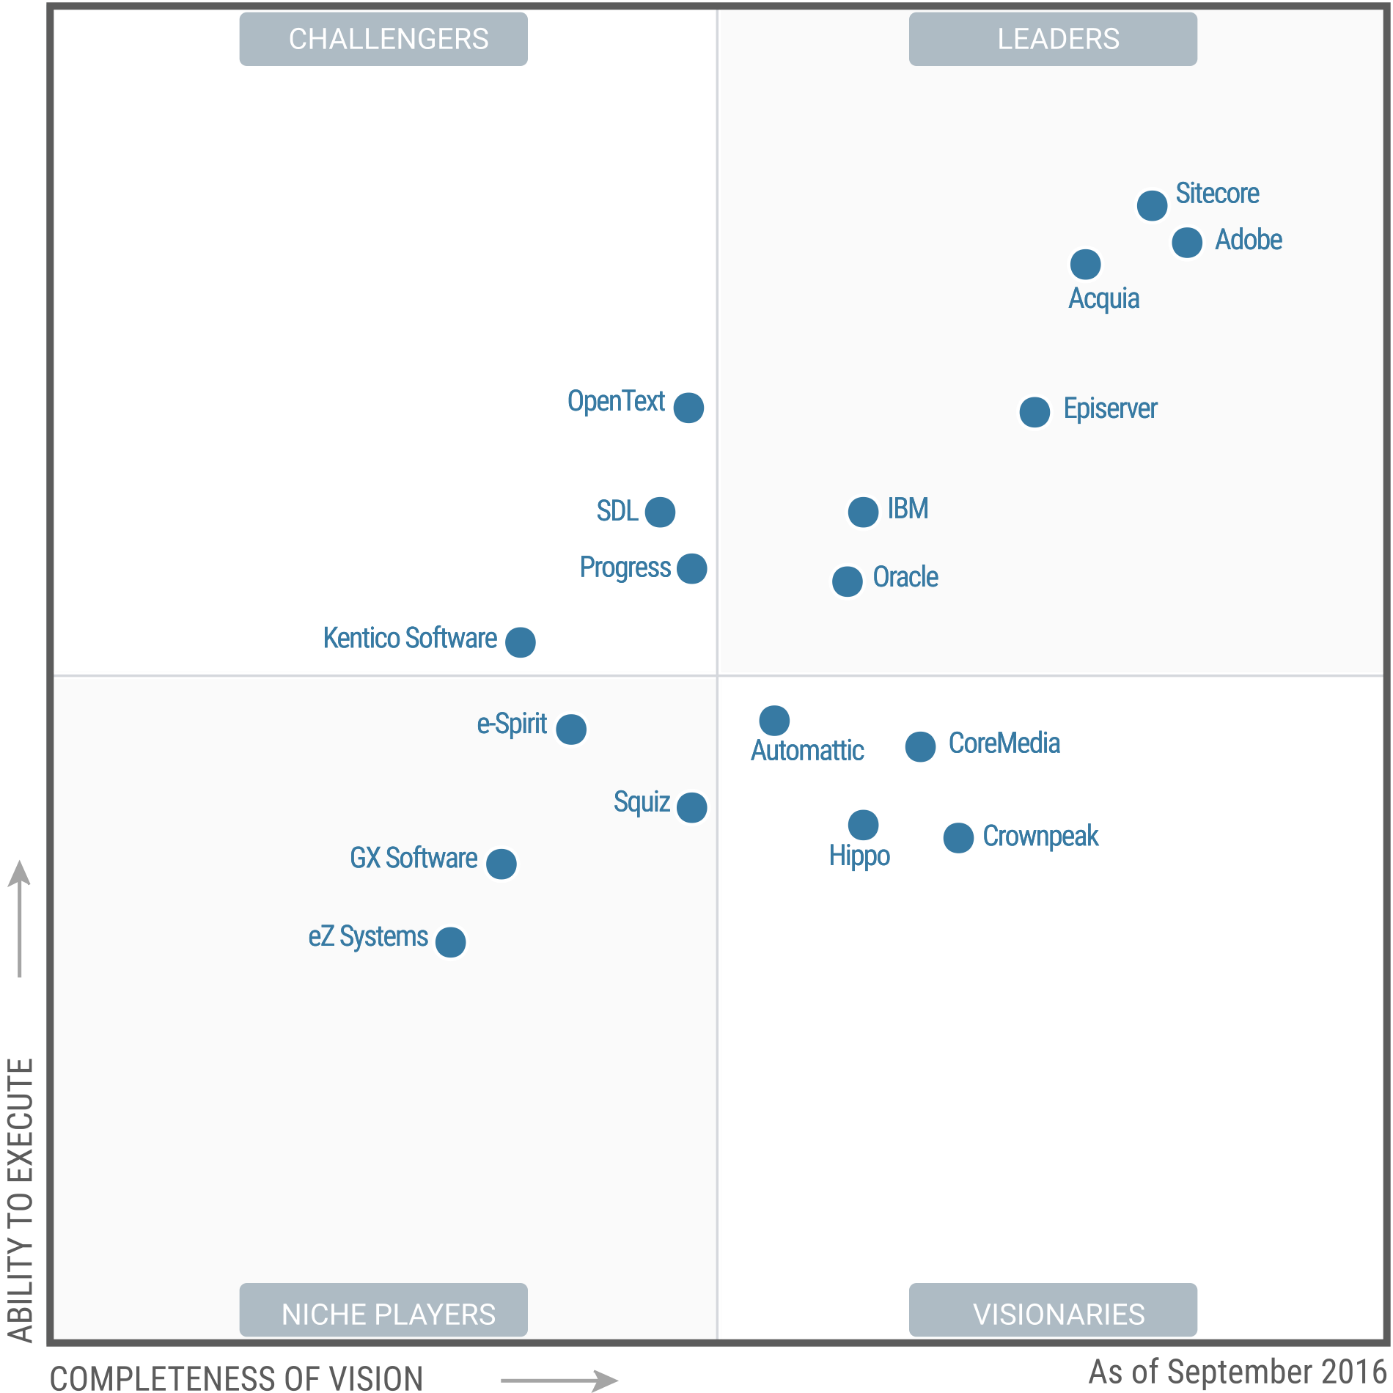 Gartner's Magic Quadrant for WCM... Who's In Who's Out